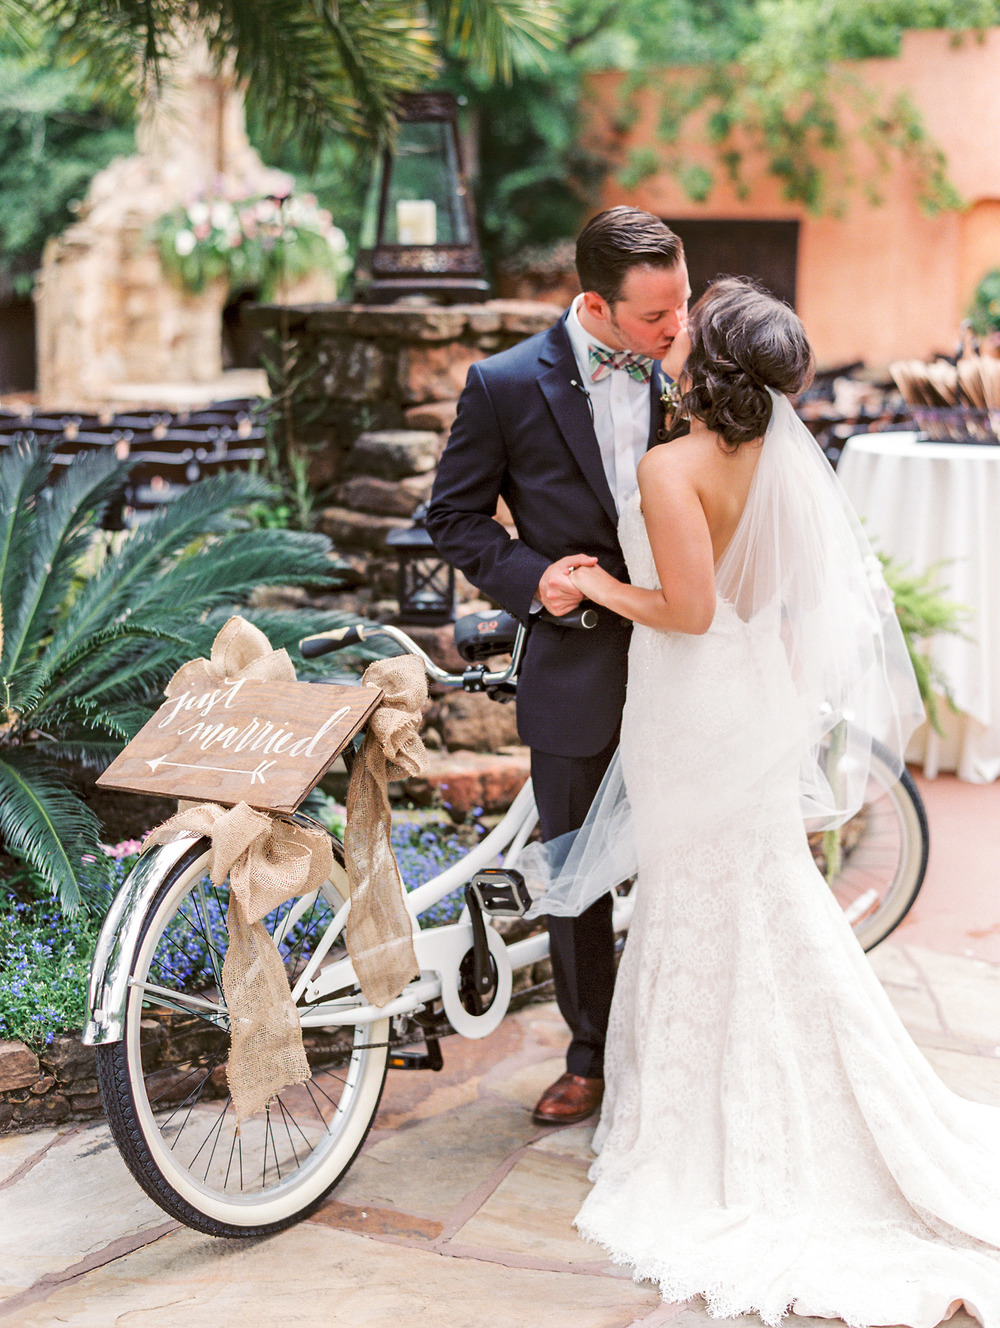 Dana Fernandez Photography Agave Road Agave Estates Houston Texas Wedding Photographer Destination Southwest Film-36.jpg